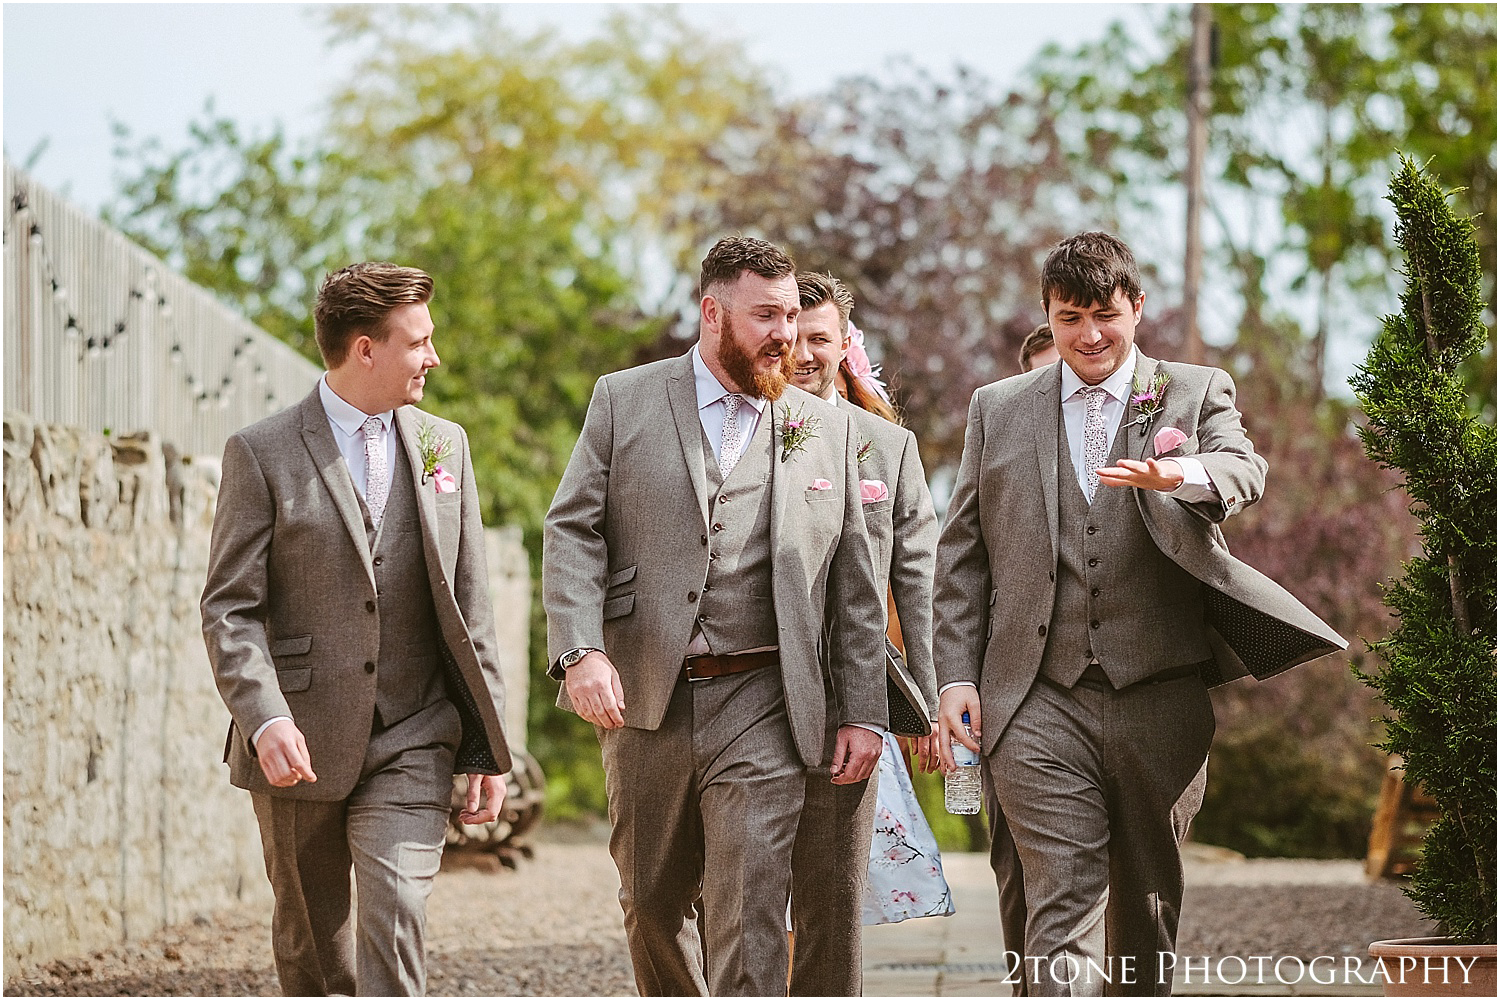 Doxford barns wedding photographer 017.jpg